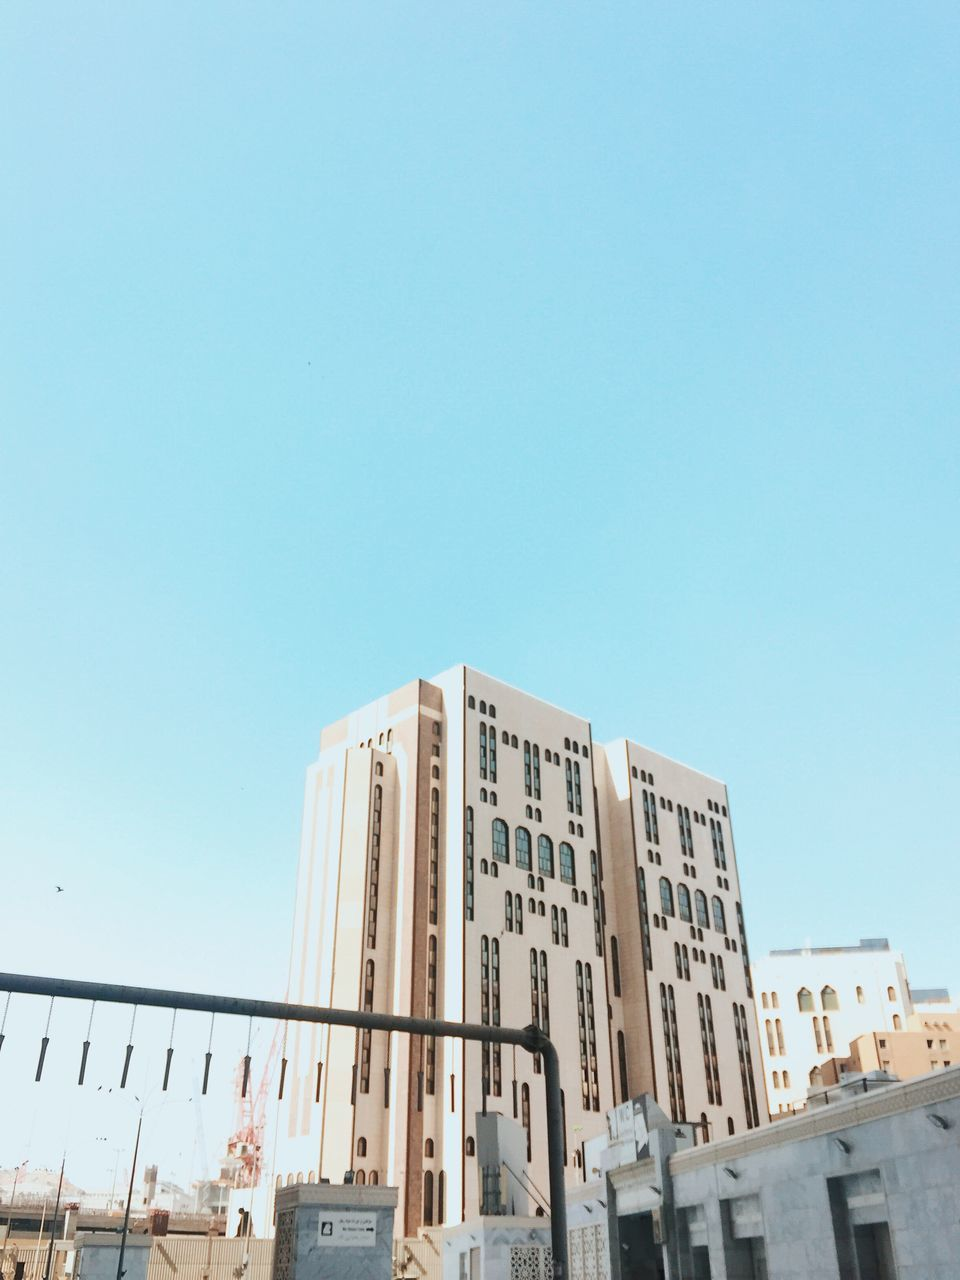 copy space, clear sky, architecture, low angle view, building exterior, built structure, day, outdoors, blue, no people, city, sky